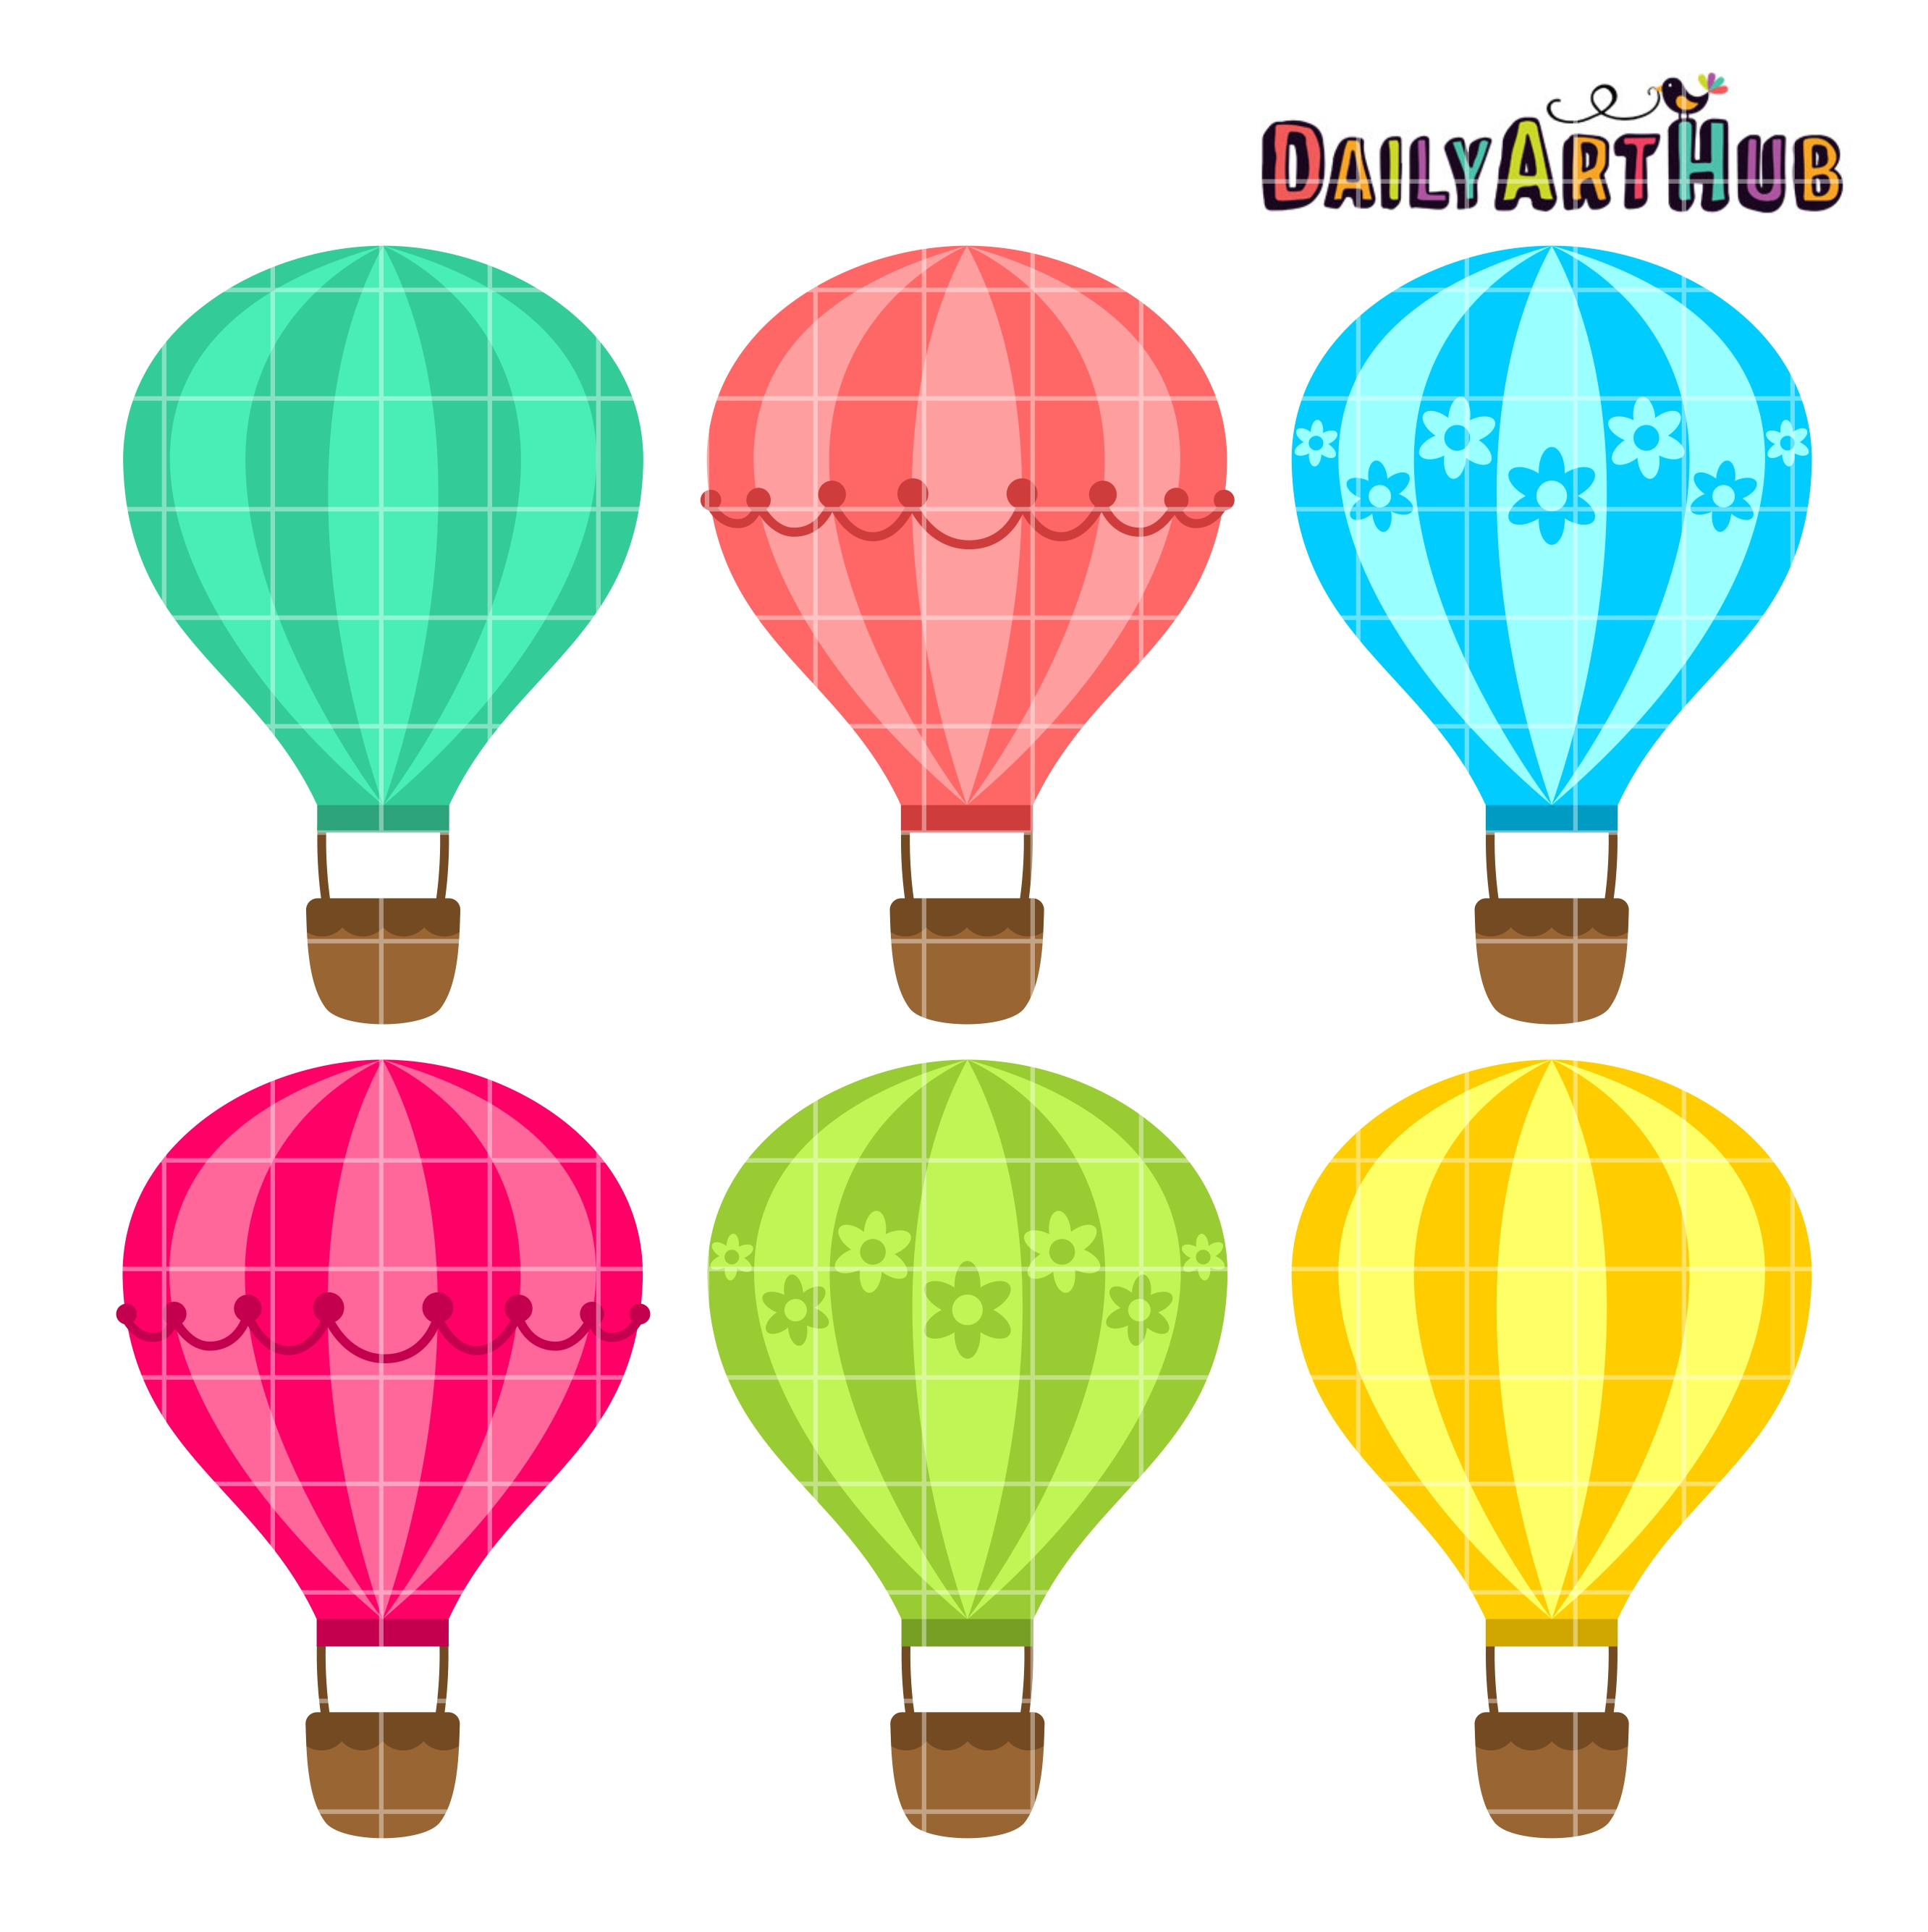 Hot Air Balloons Clip Art Set Daily Art Hub Free Clip Art Everyday